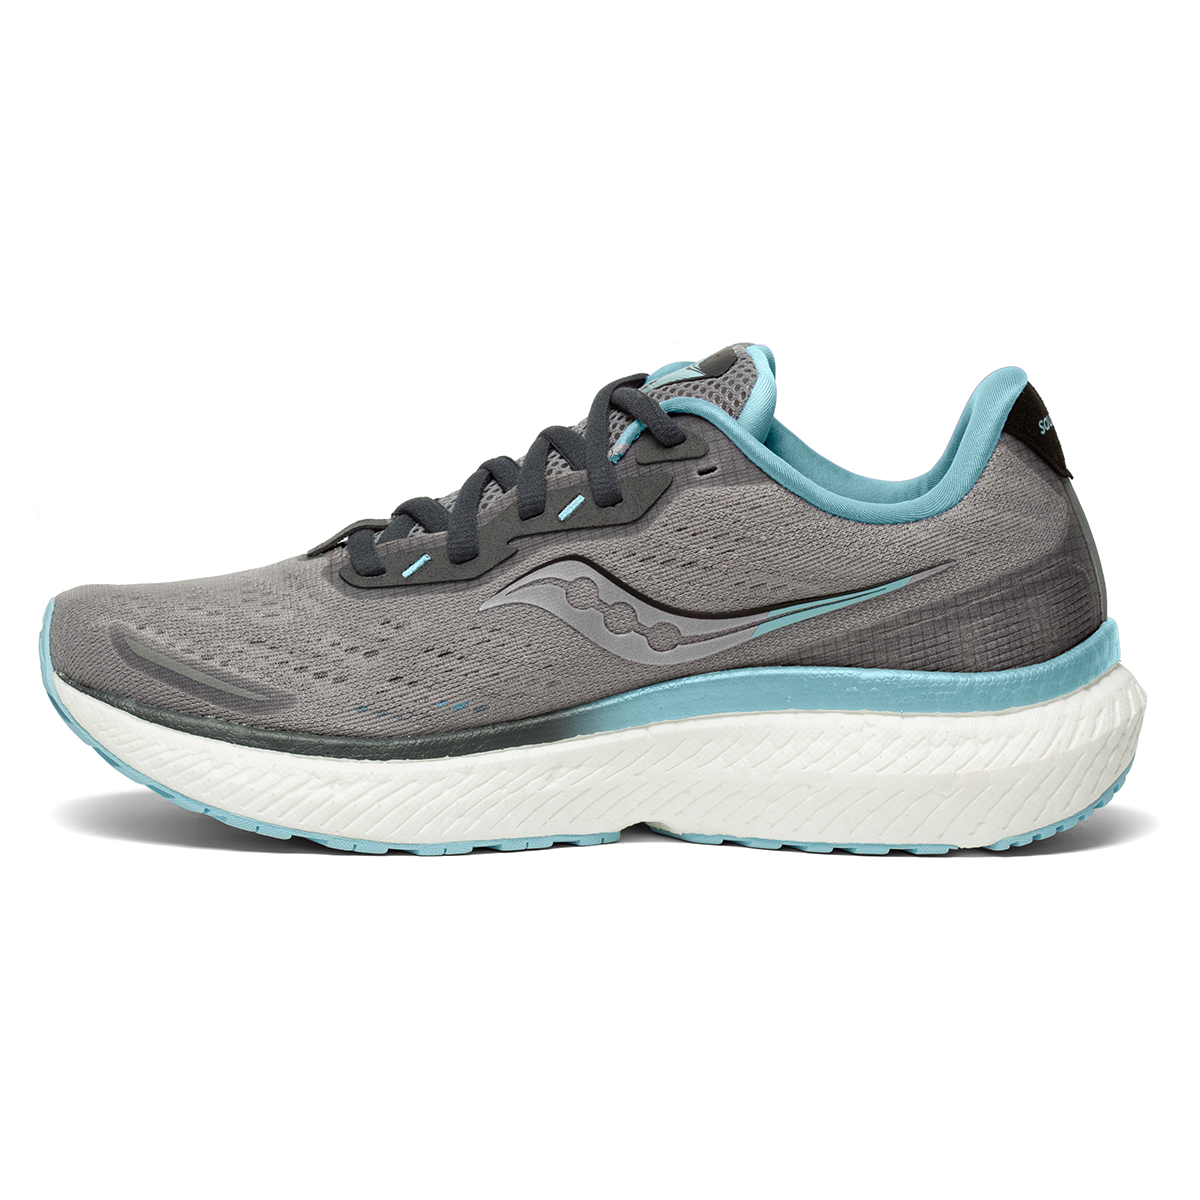 Women's Saucony Triumph 19 Running Shoe - Color: Alloy/Concord - Size: 6 - Width: Regular, Alloy/Concord, large, image 4